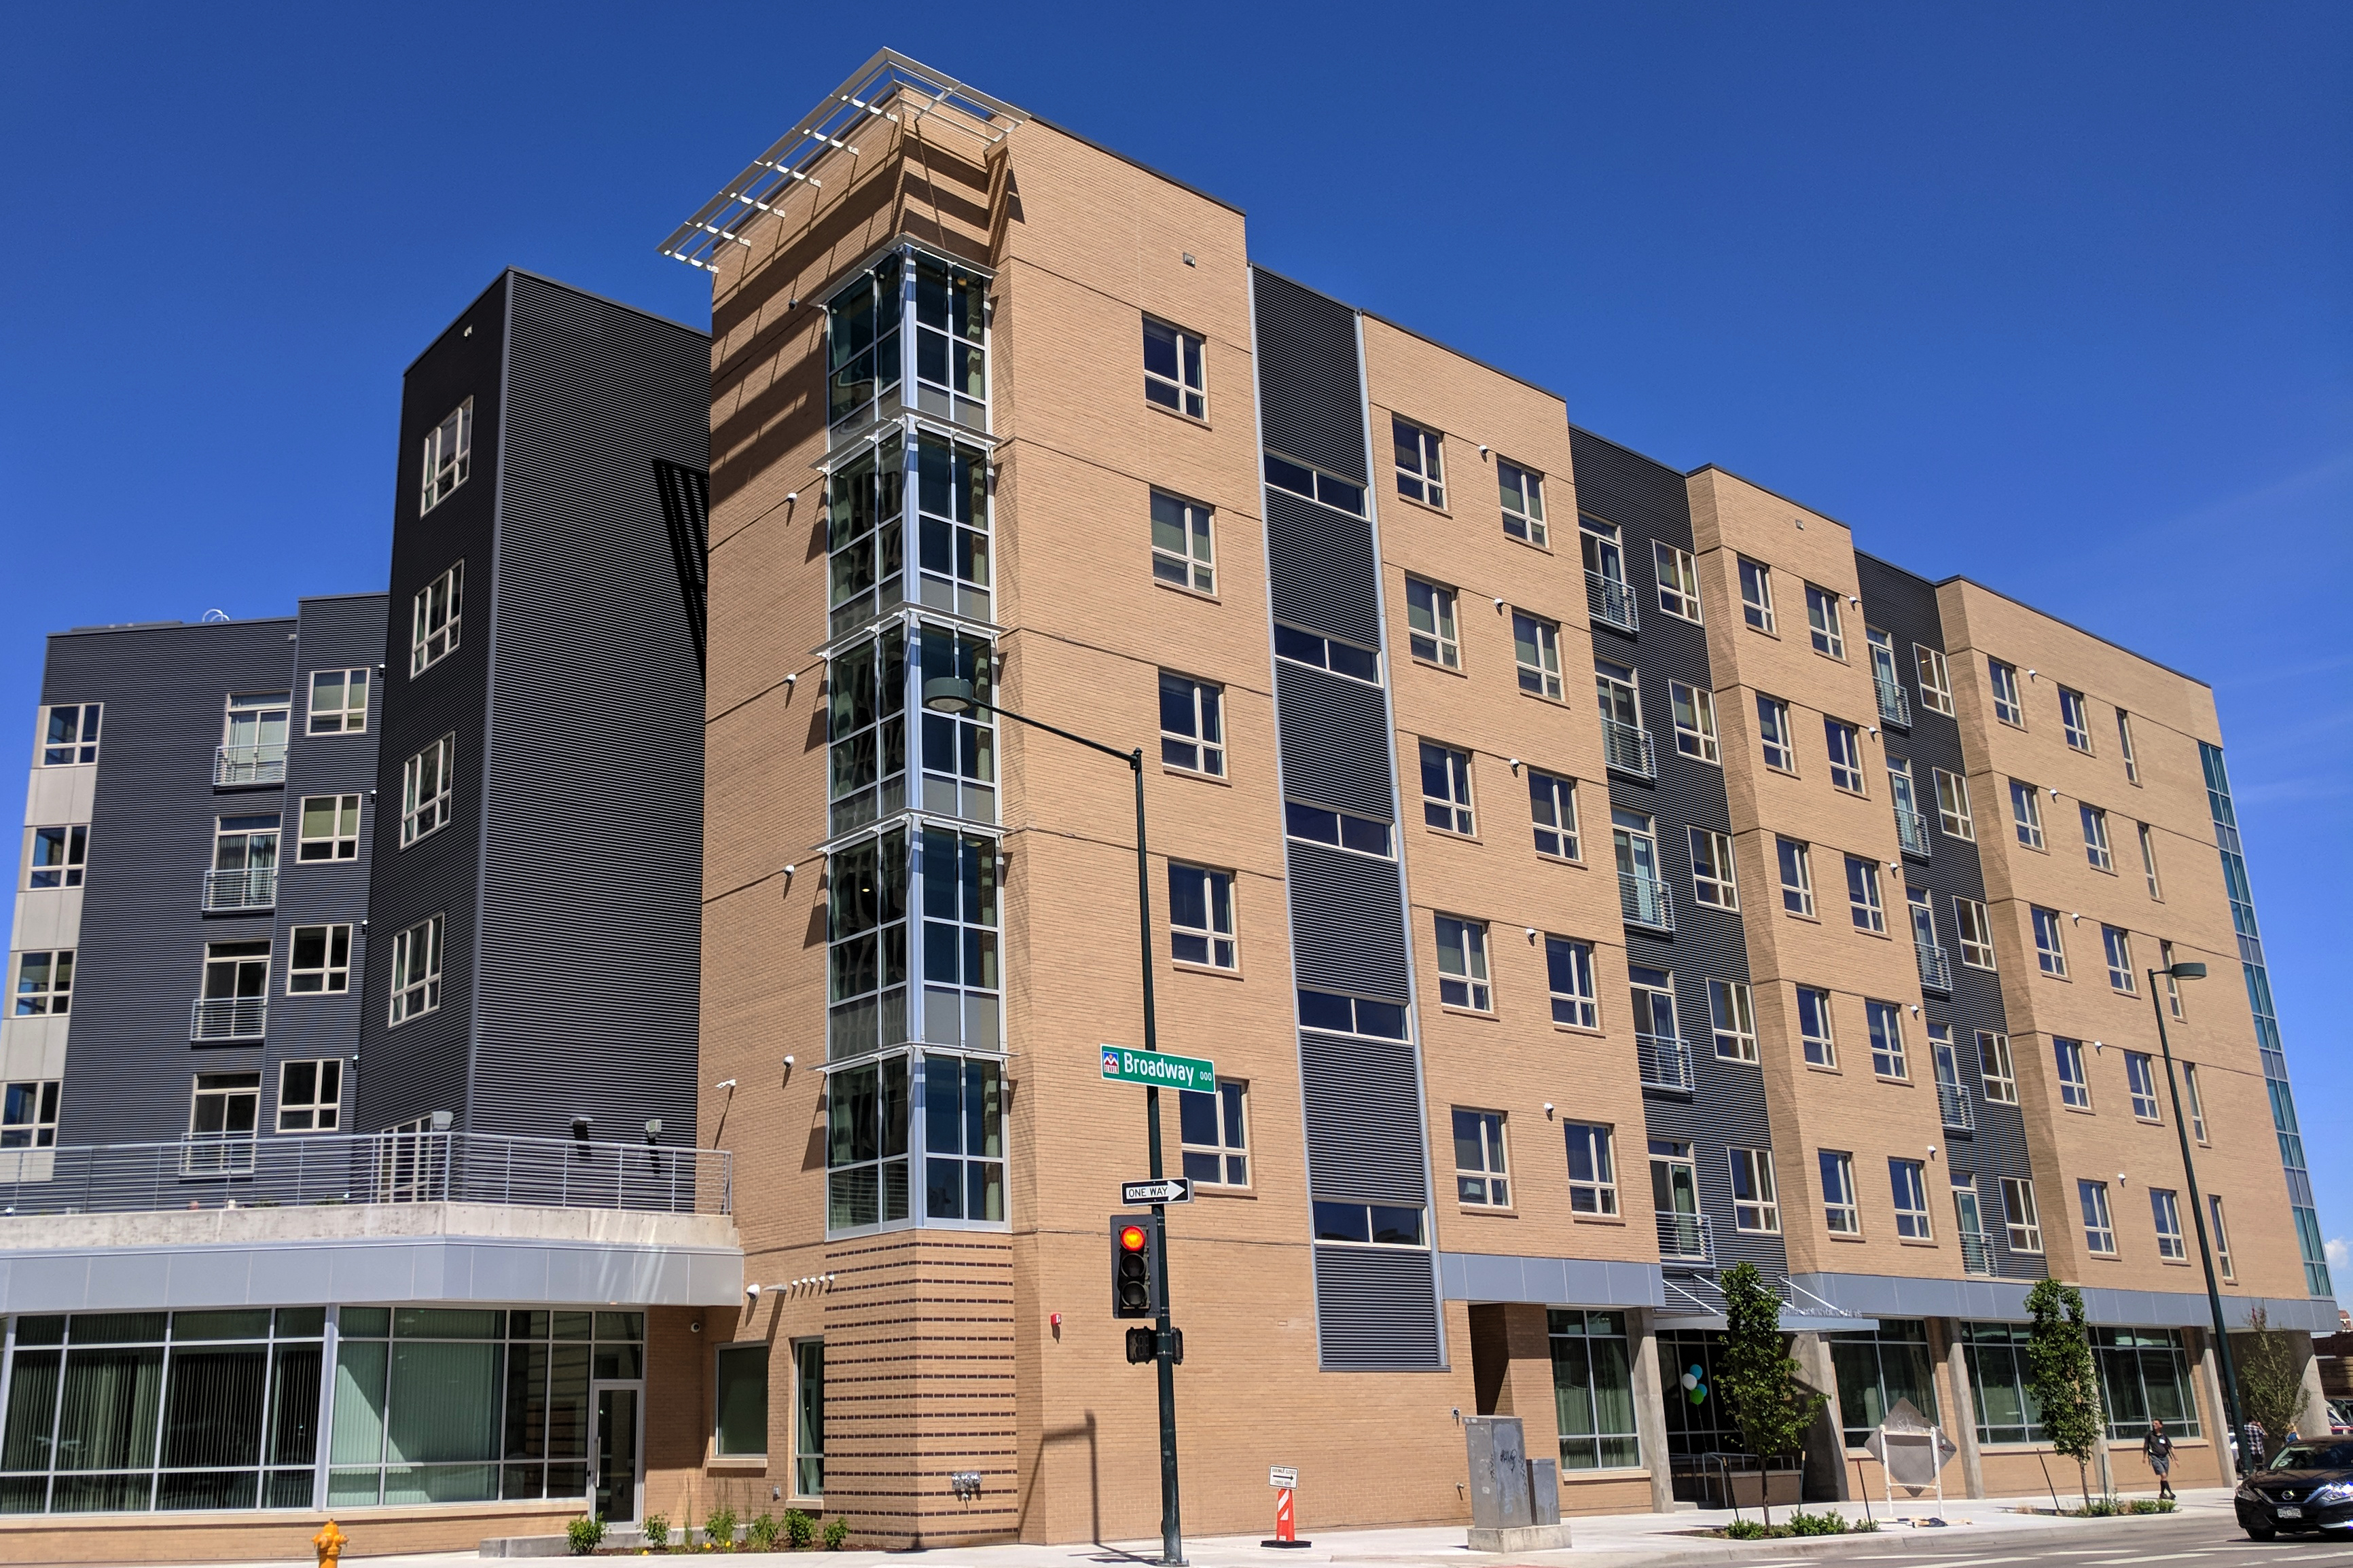 Photo: The Renaissance Downtown Lofts for the homeless In Denver opened May 31, 2018